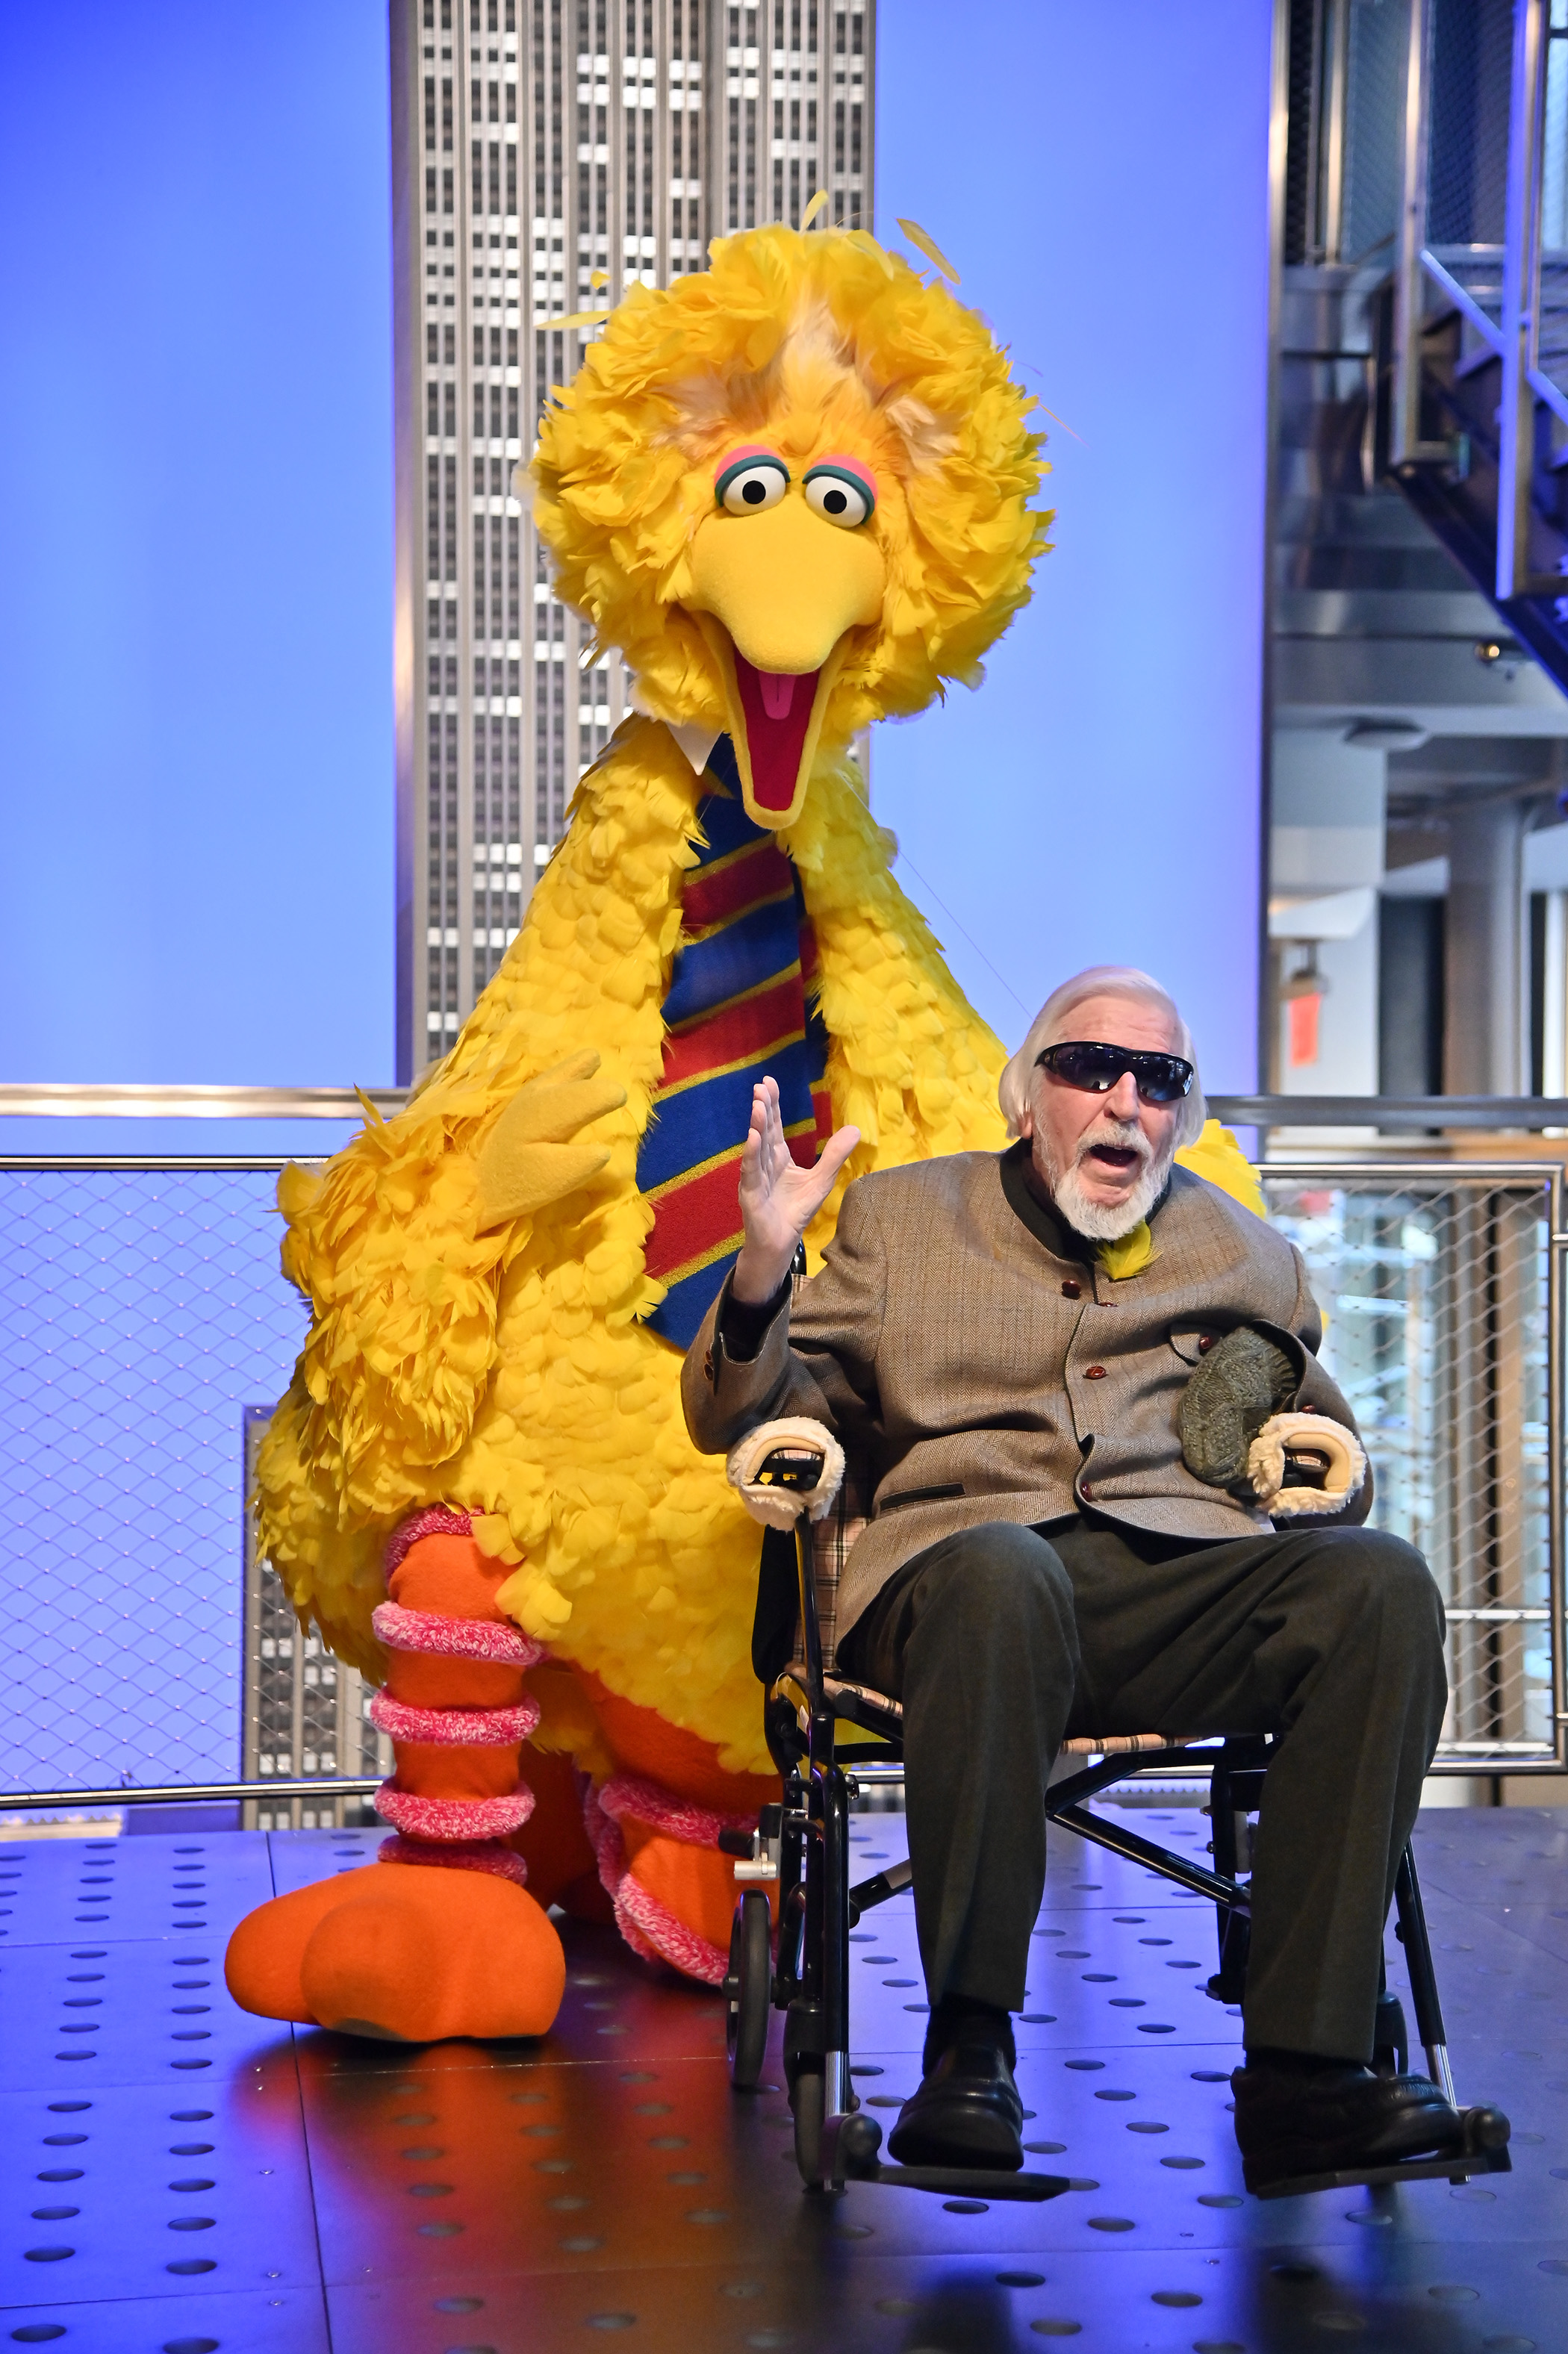 Sesame Street's Big Bird And Puppeteer Caroll Spinney Light The Empire State Building at The Empire State Building on November 08, 2019 in New York City. (Photo by Theo Wargo/Getty Images)